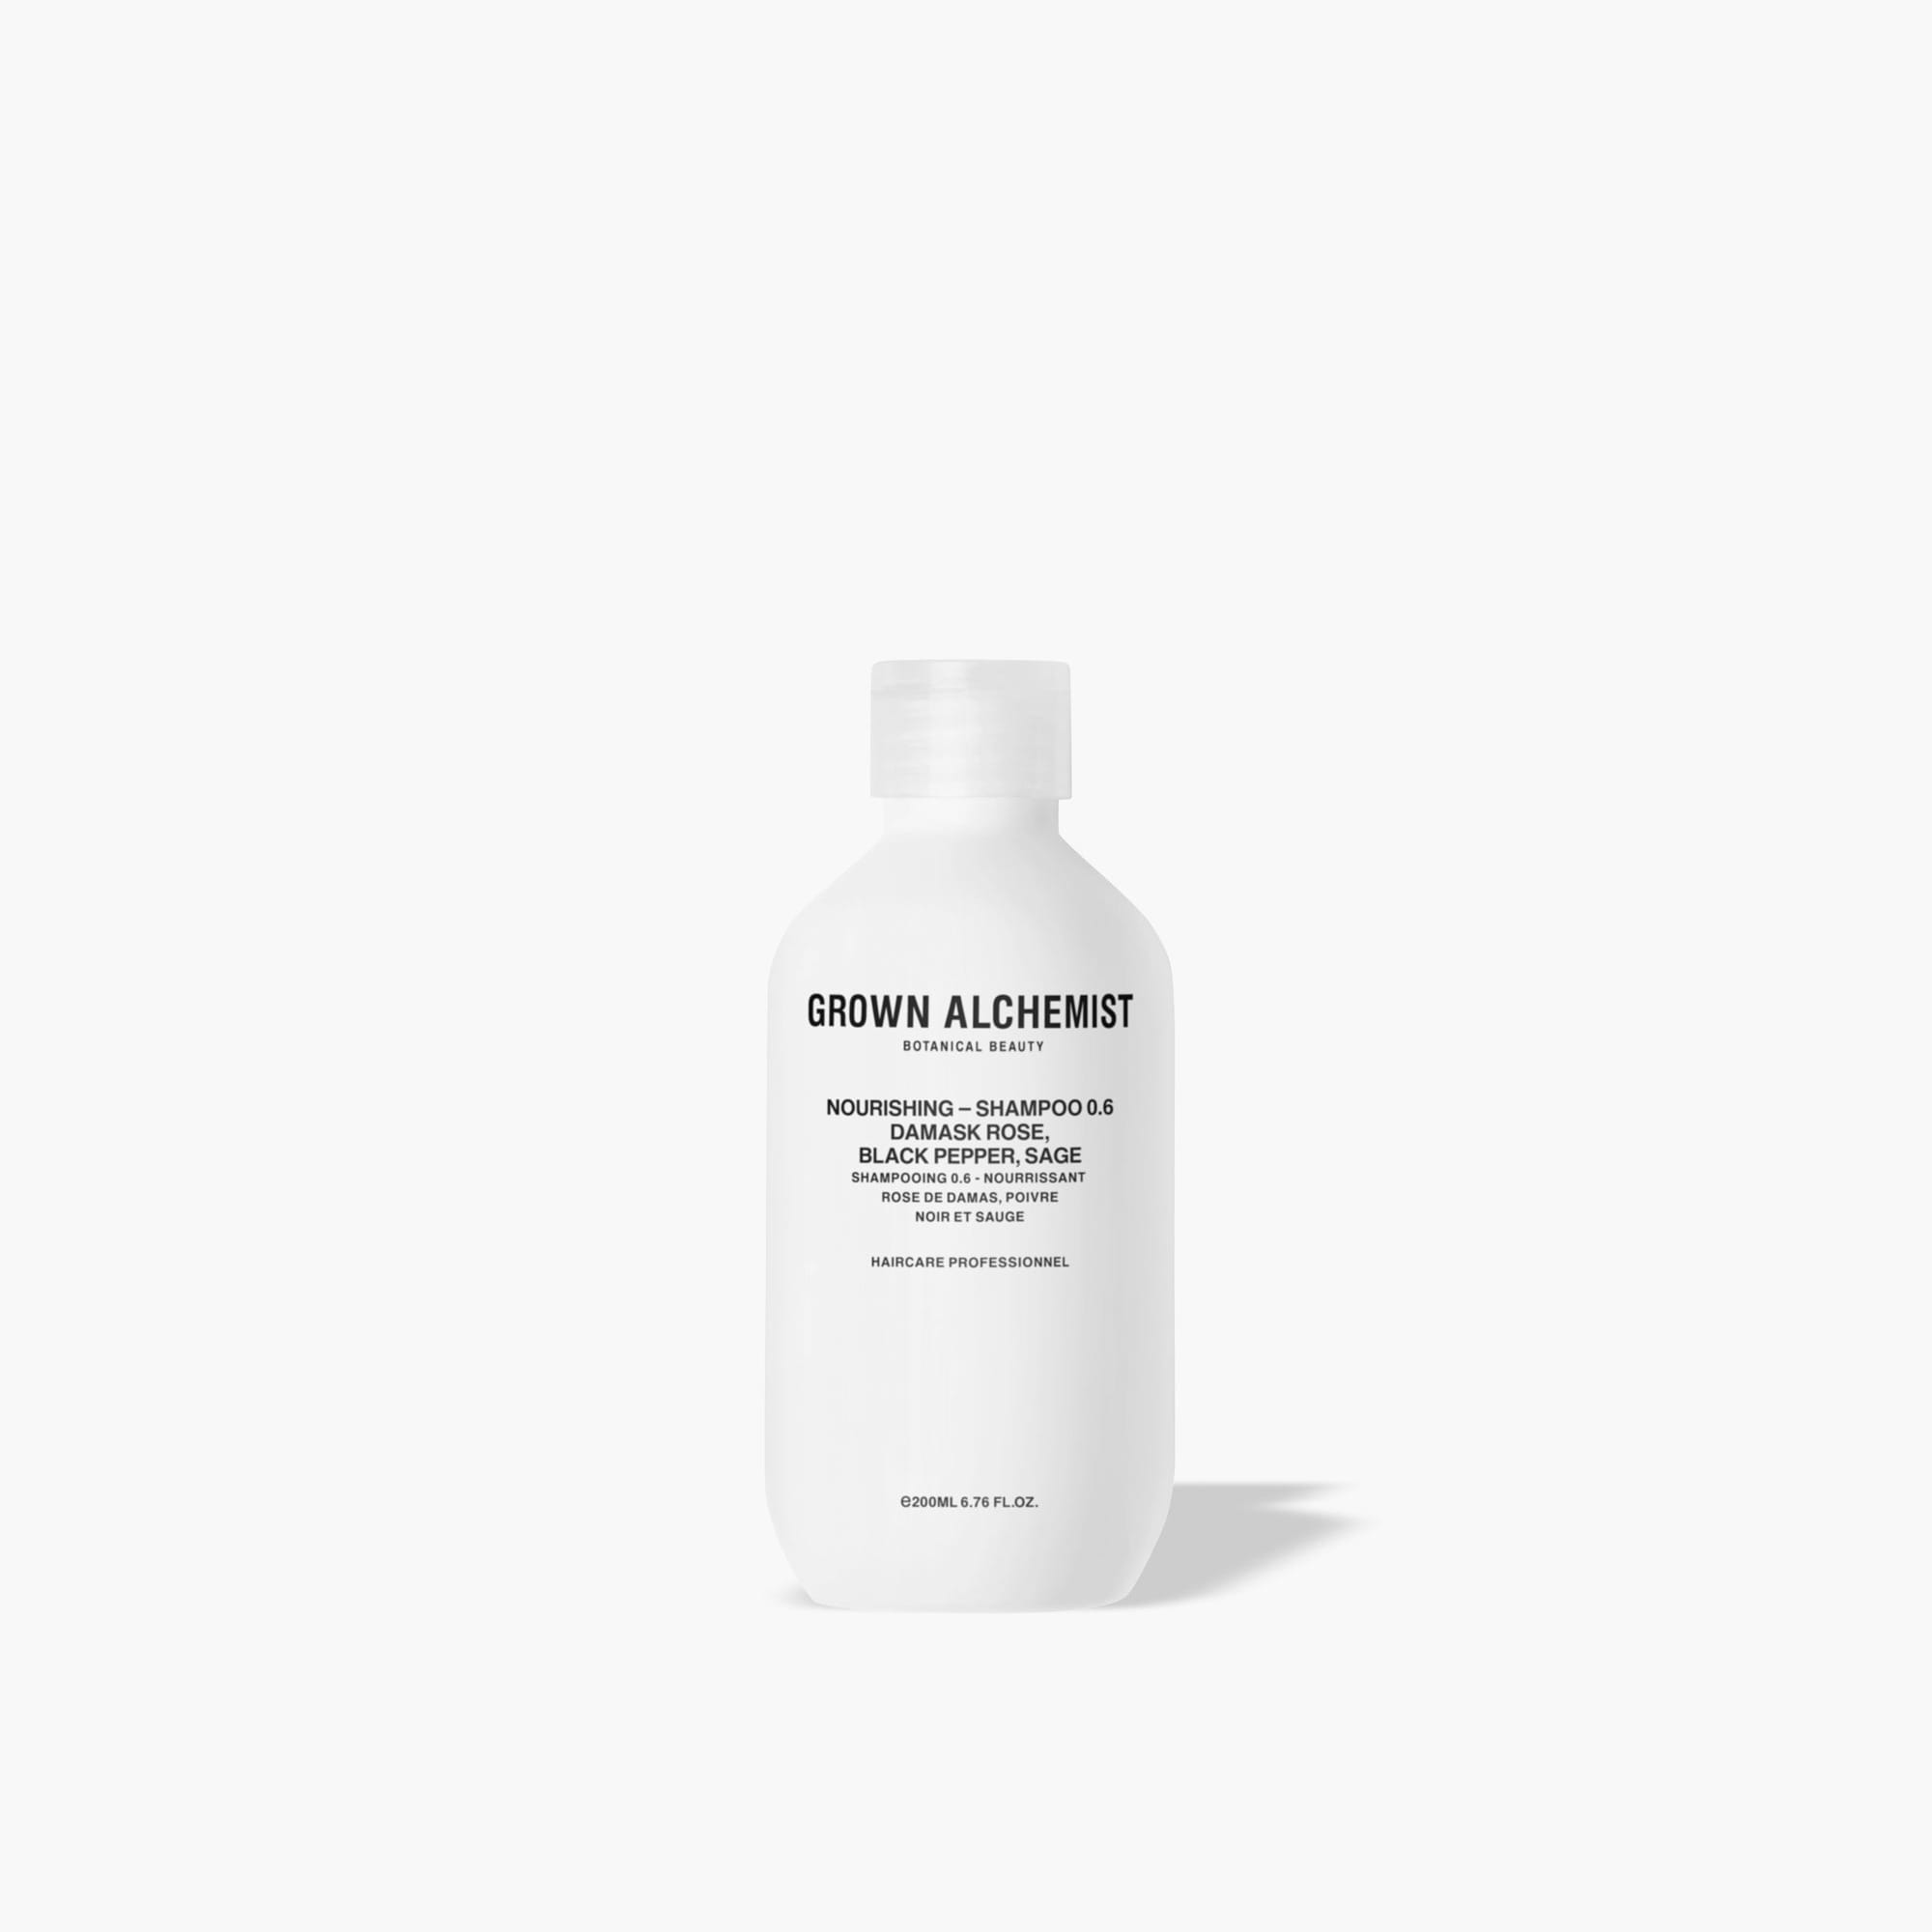 mens GROWN ALCHEMIST® 200 ml nourishing shampoo 0.6 - damask rose, black pepper and sage